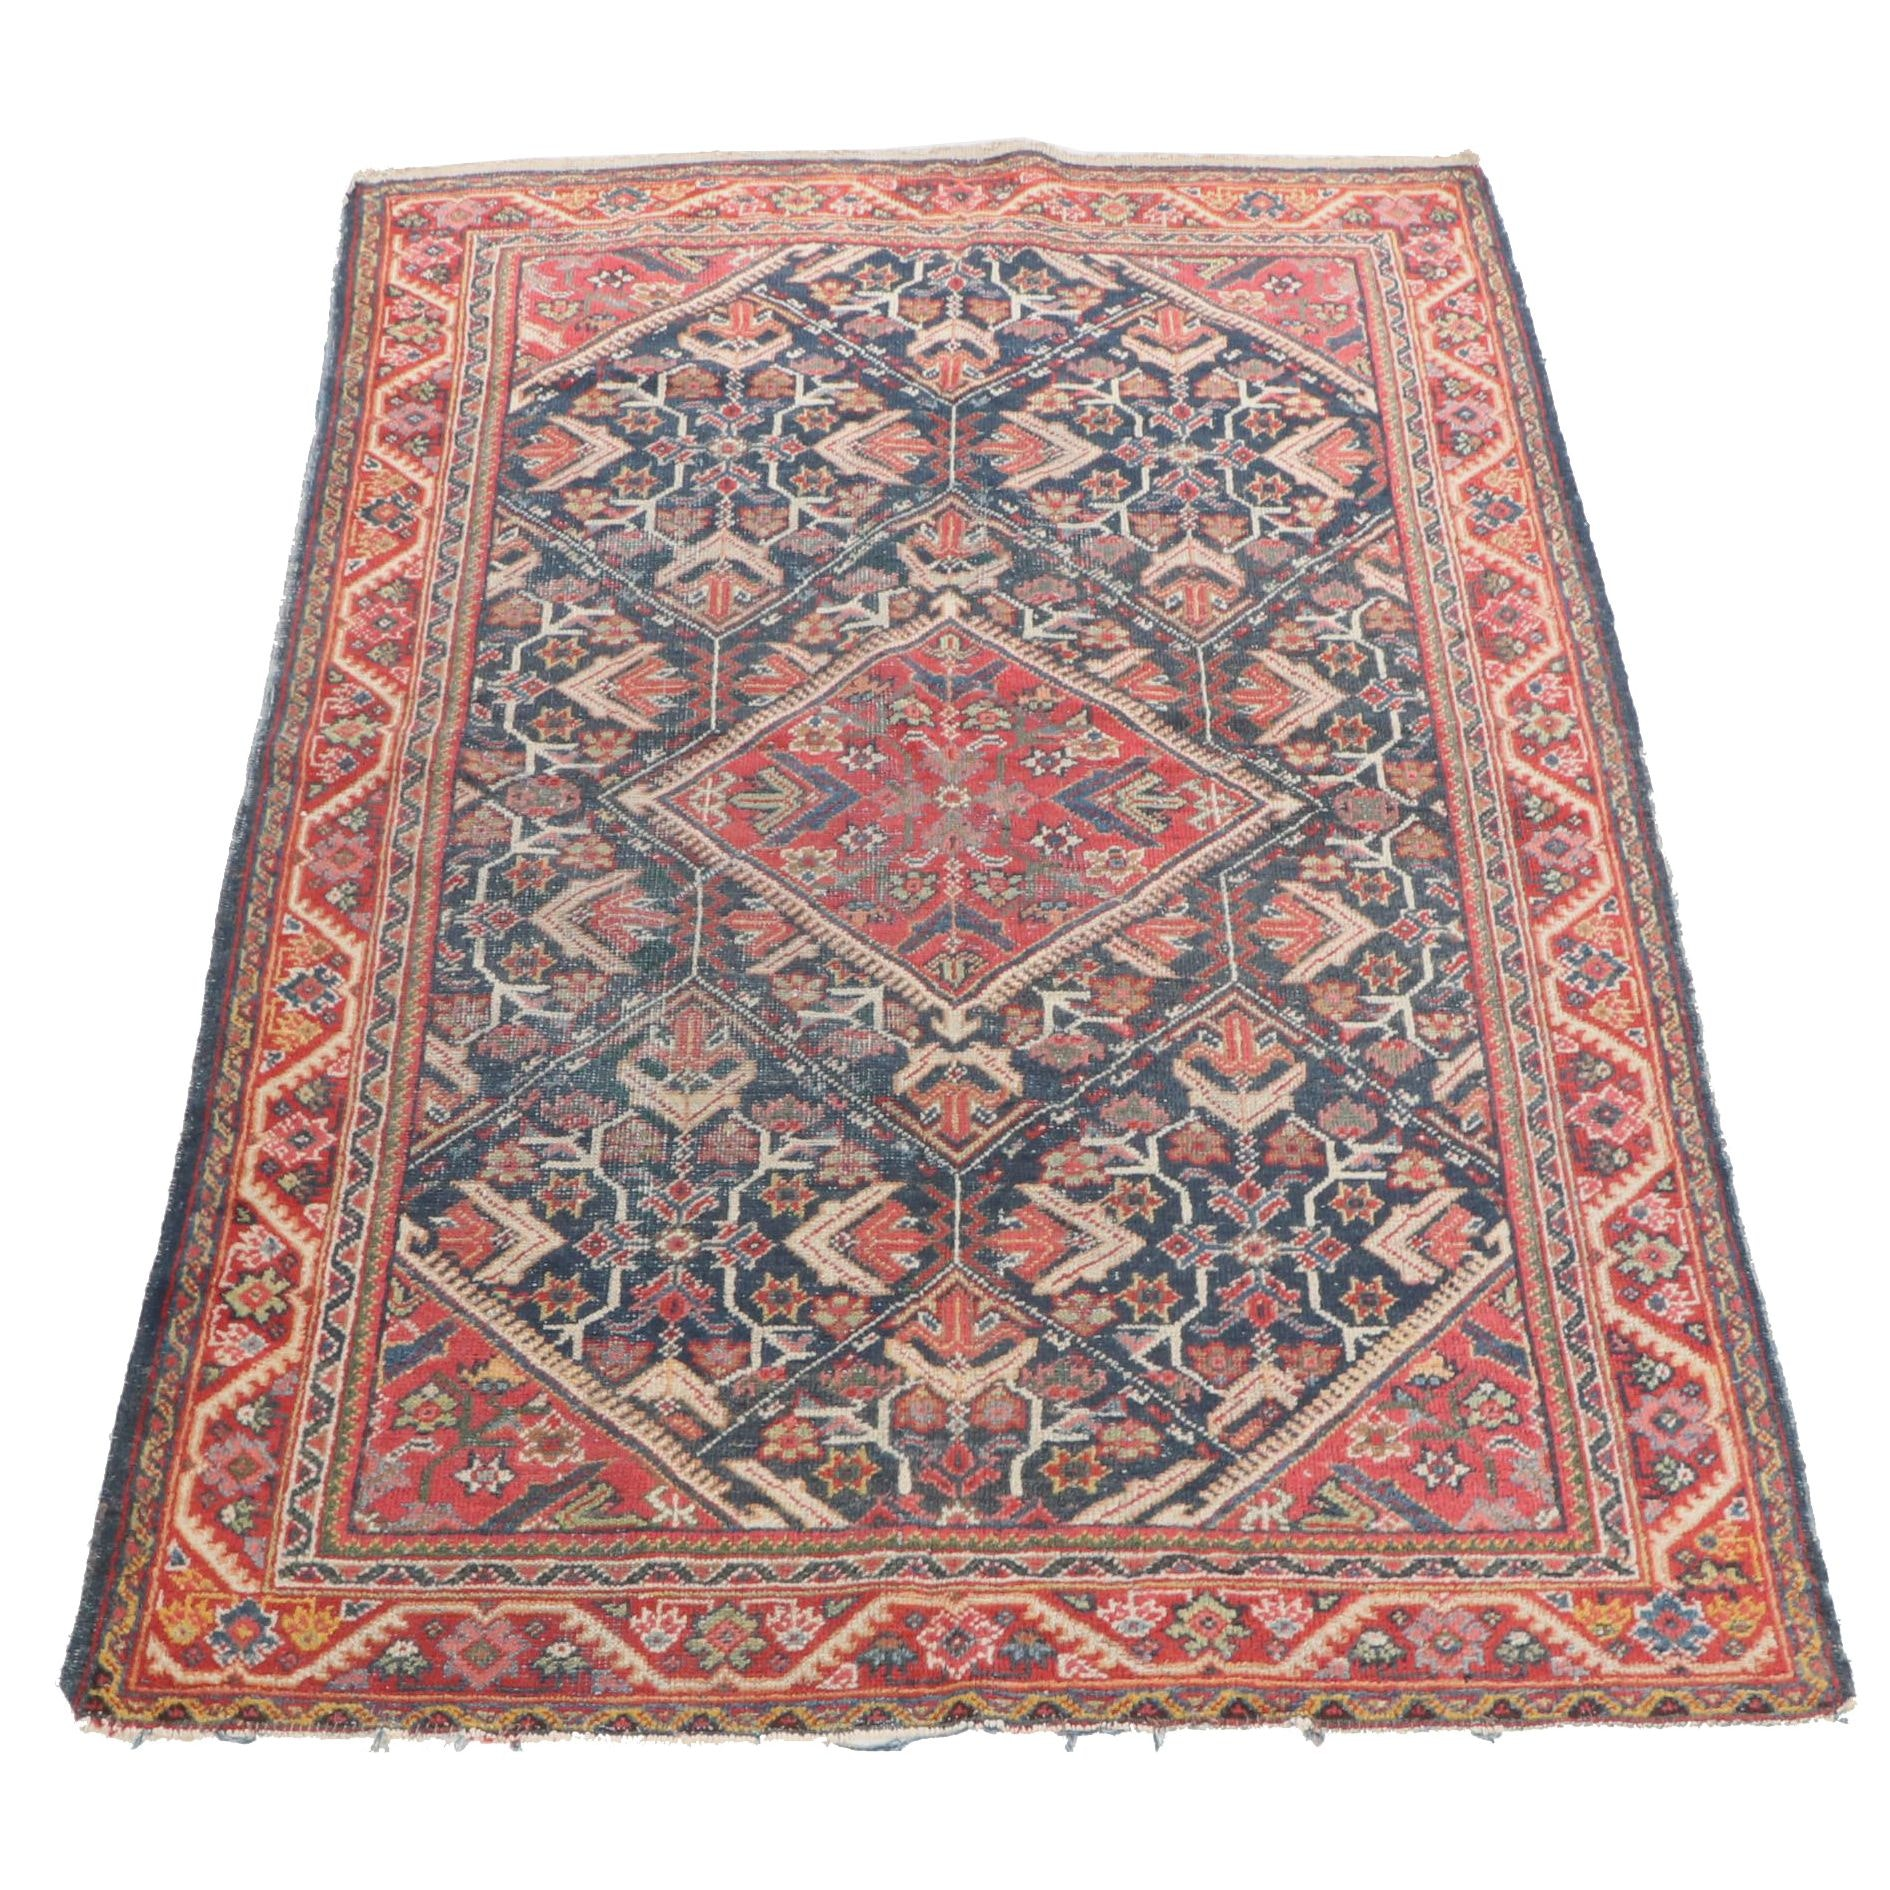 Hand-Knotted Persian Mahal Wool Rug, Early 20th Century